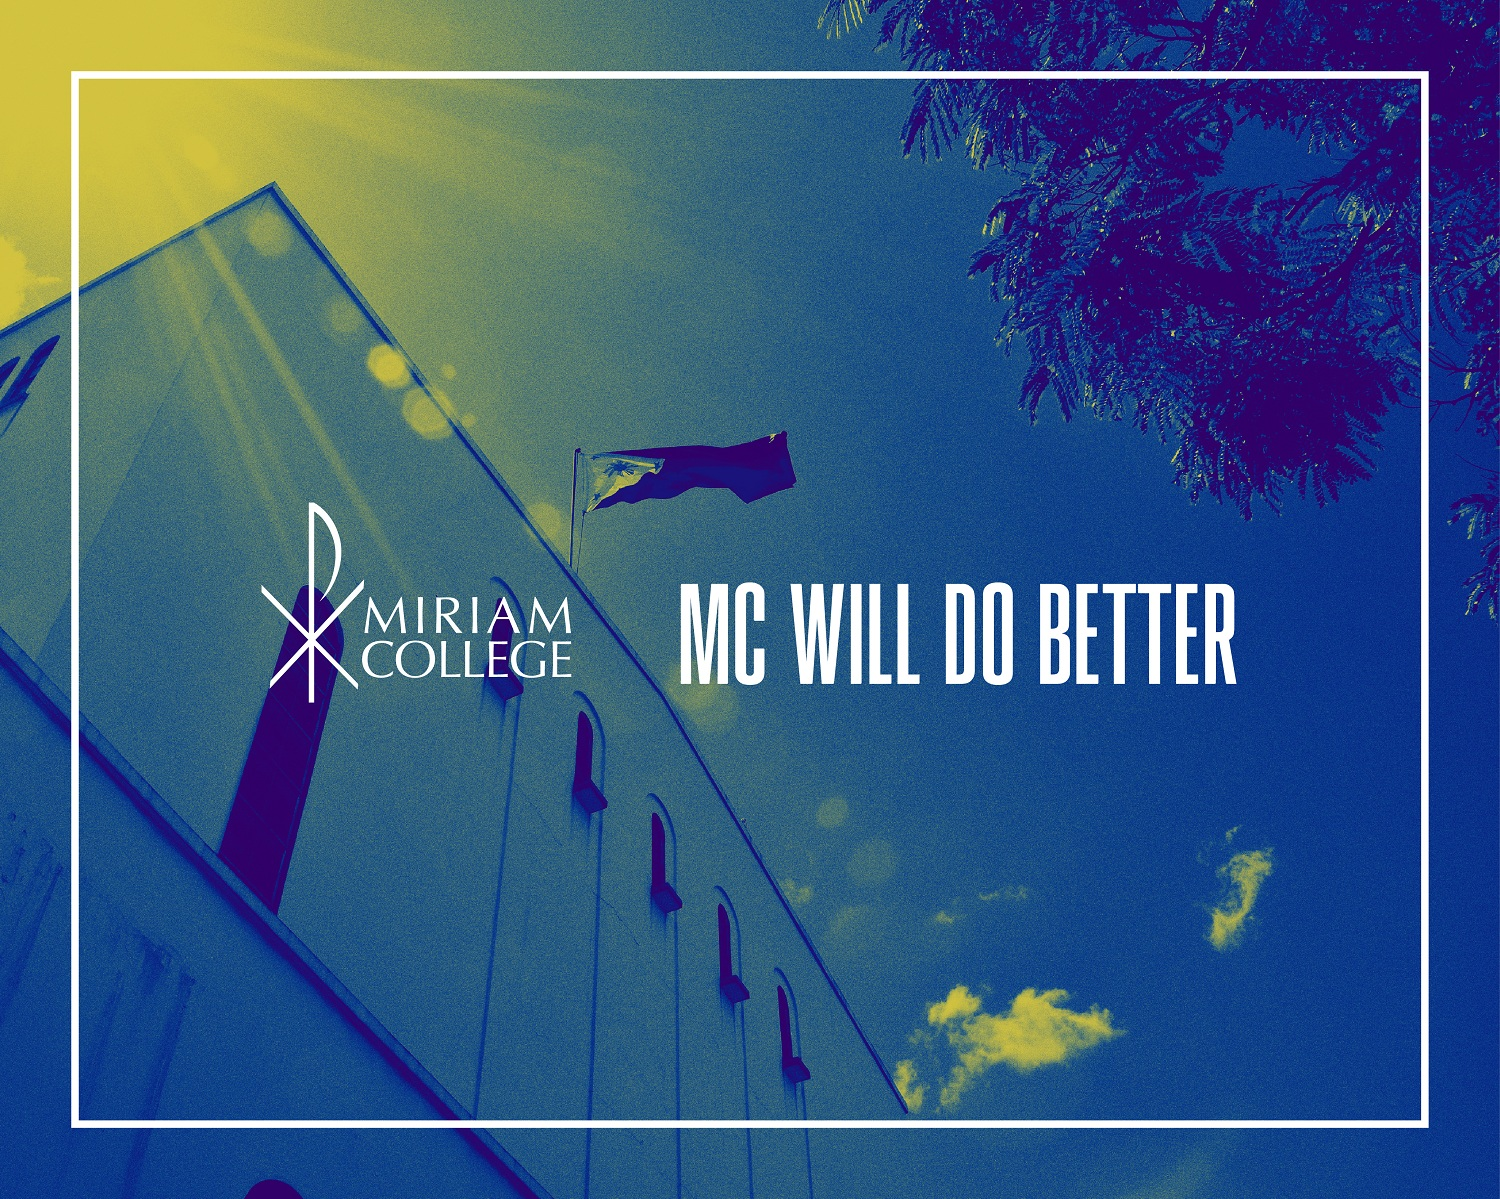 MC WILL DO BETTER